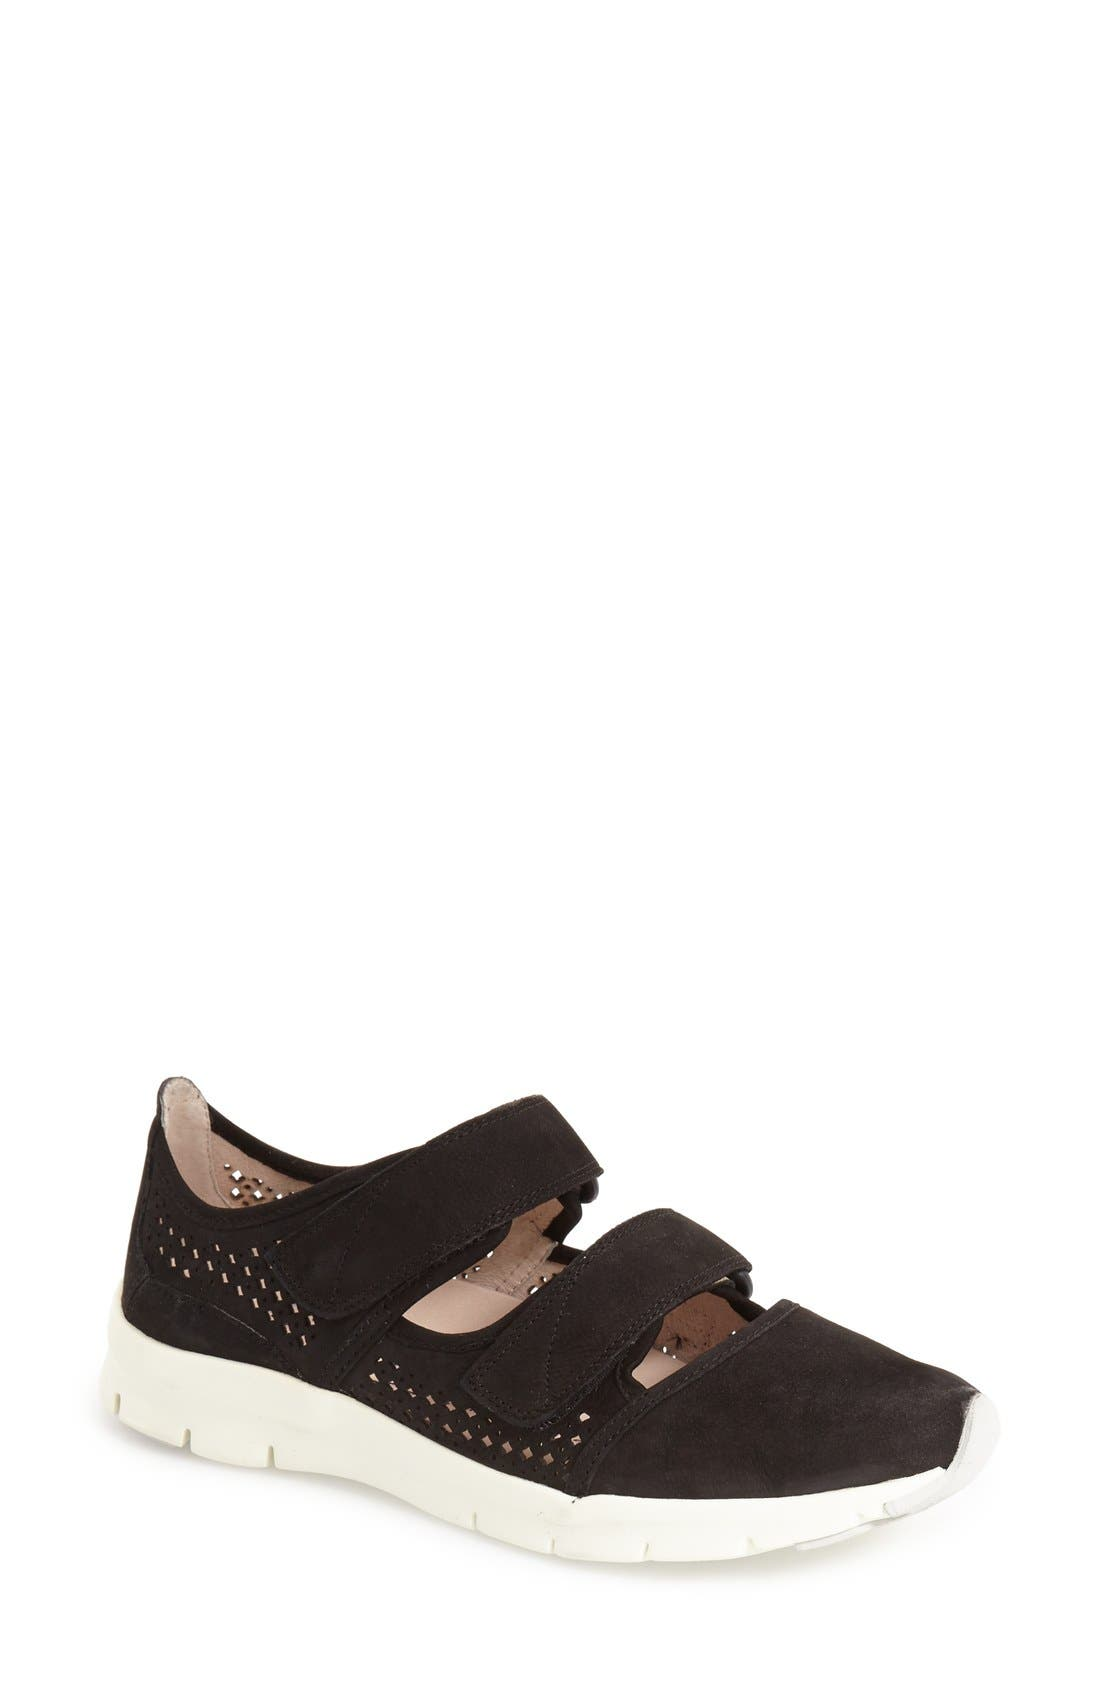 Sudini 'Tacy' Slip-On Leather Sneaker (Women)